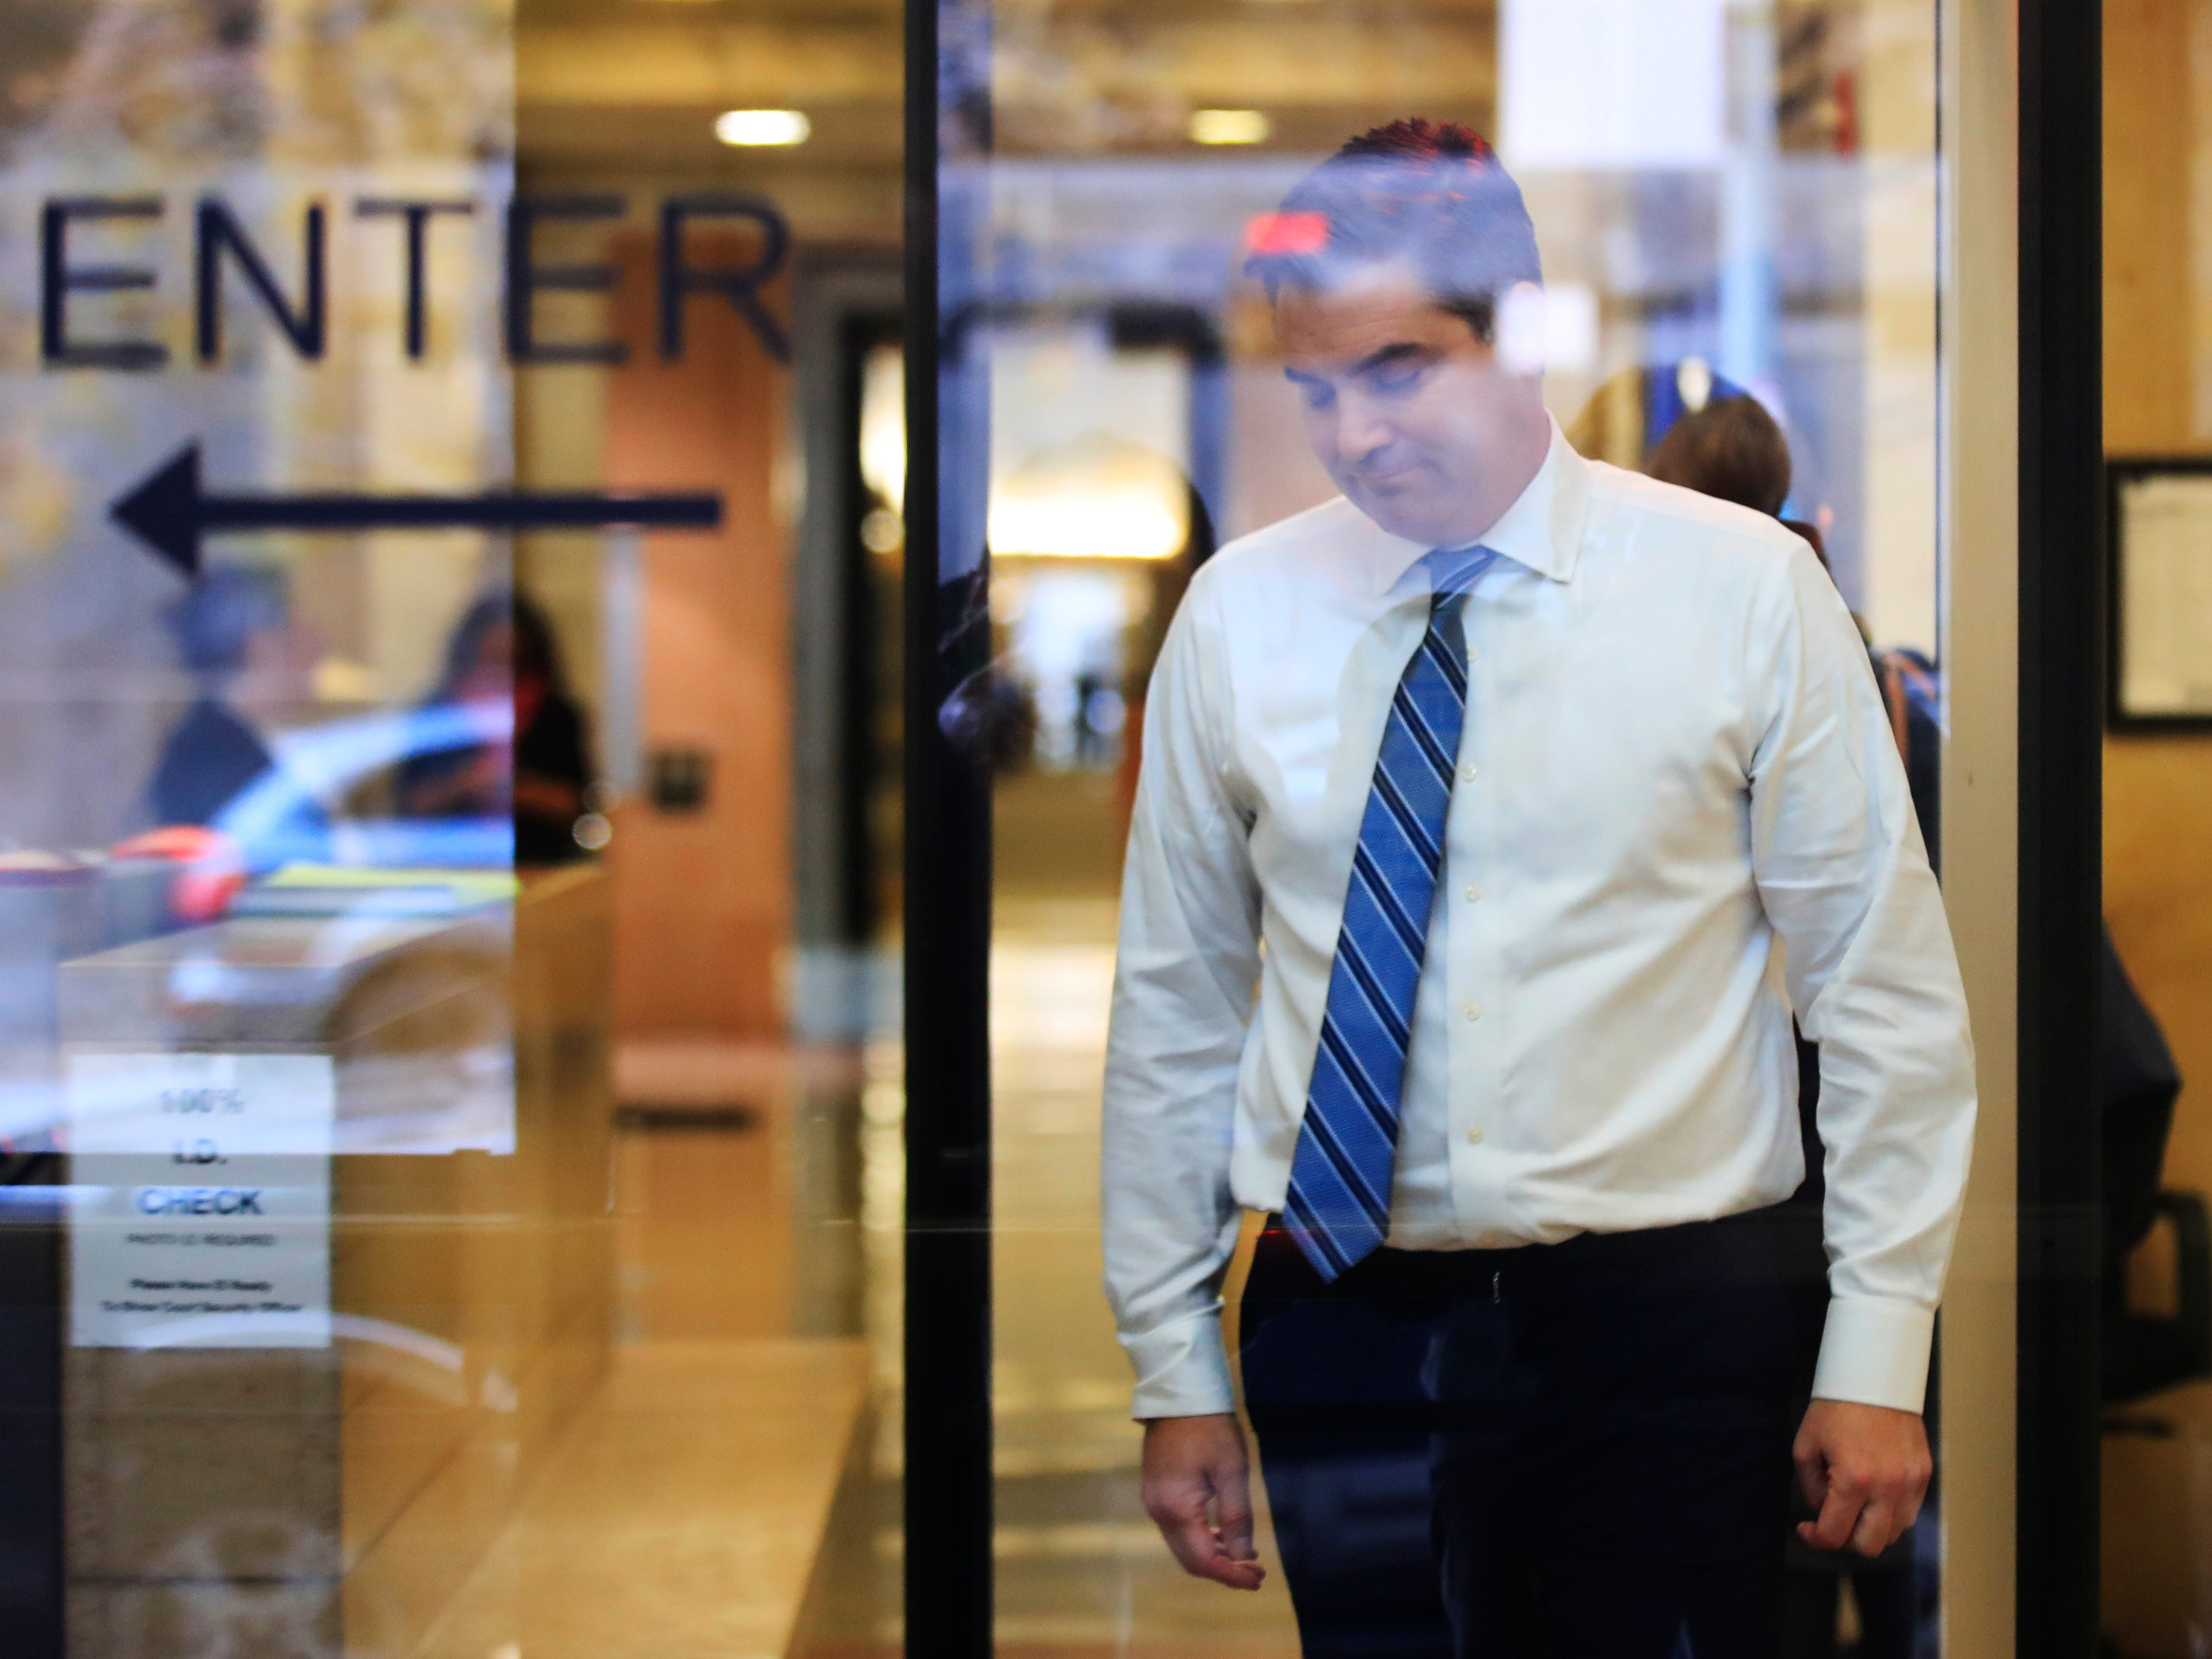 CNN's Jim Acosta goes through security check as he enters the federal court in Washington, Nov. 14, 2018, to attend a hearing in a legal challenge against President Donal Trump's administration.